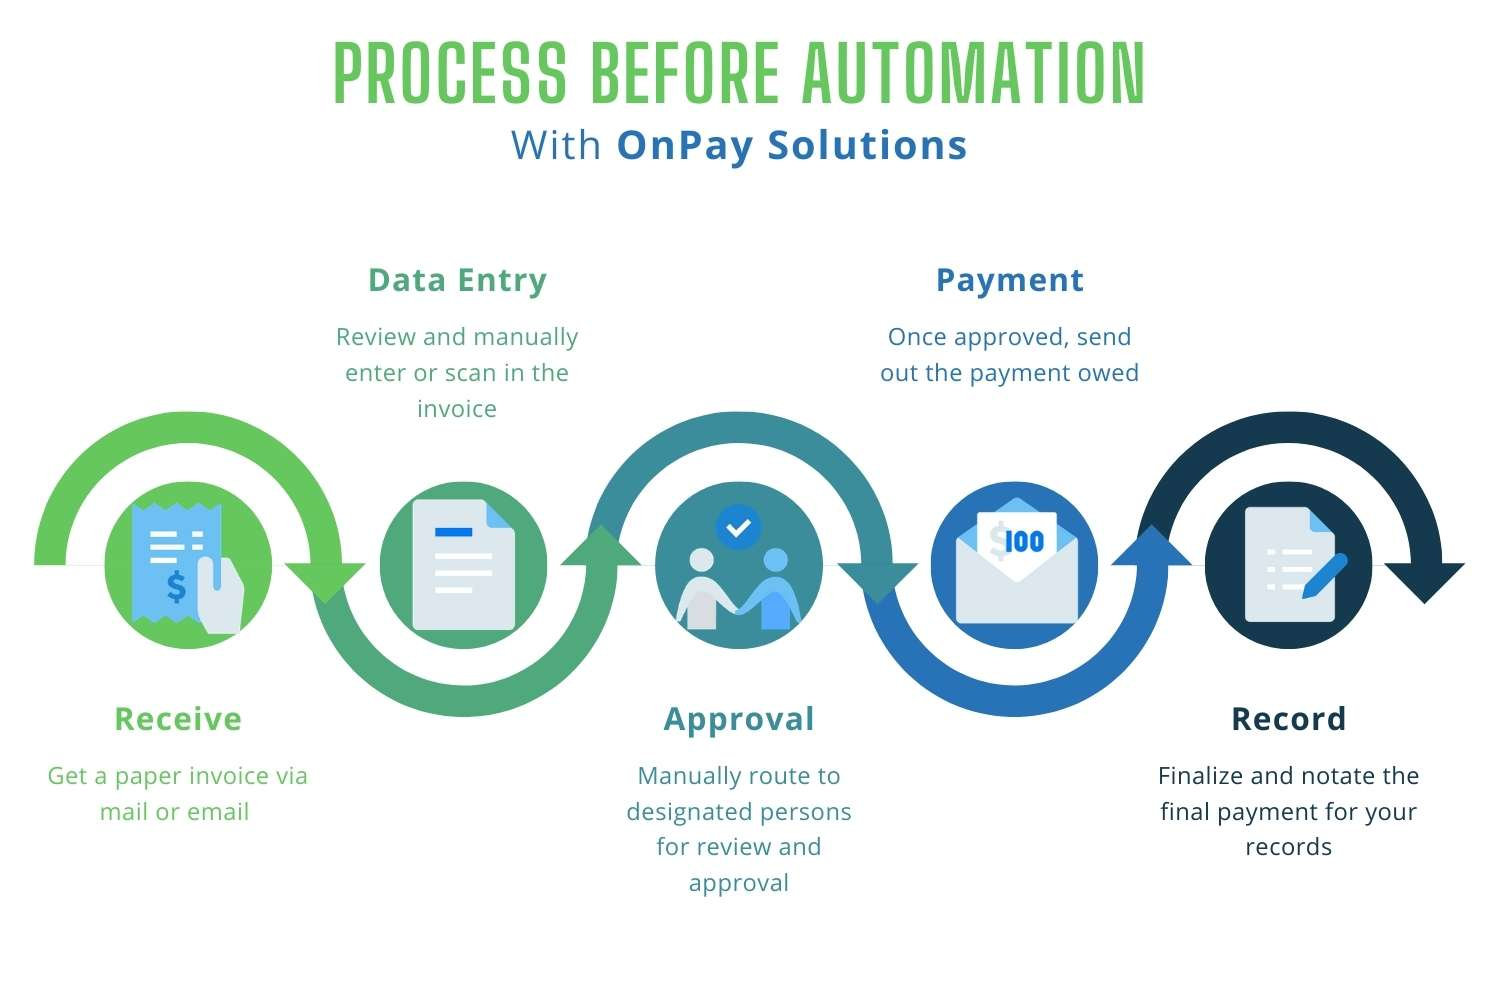 AP process before automation info-graphic